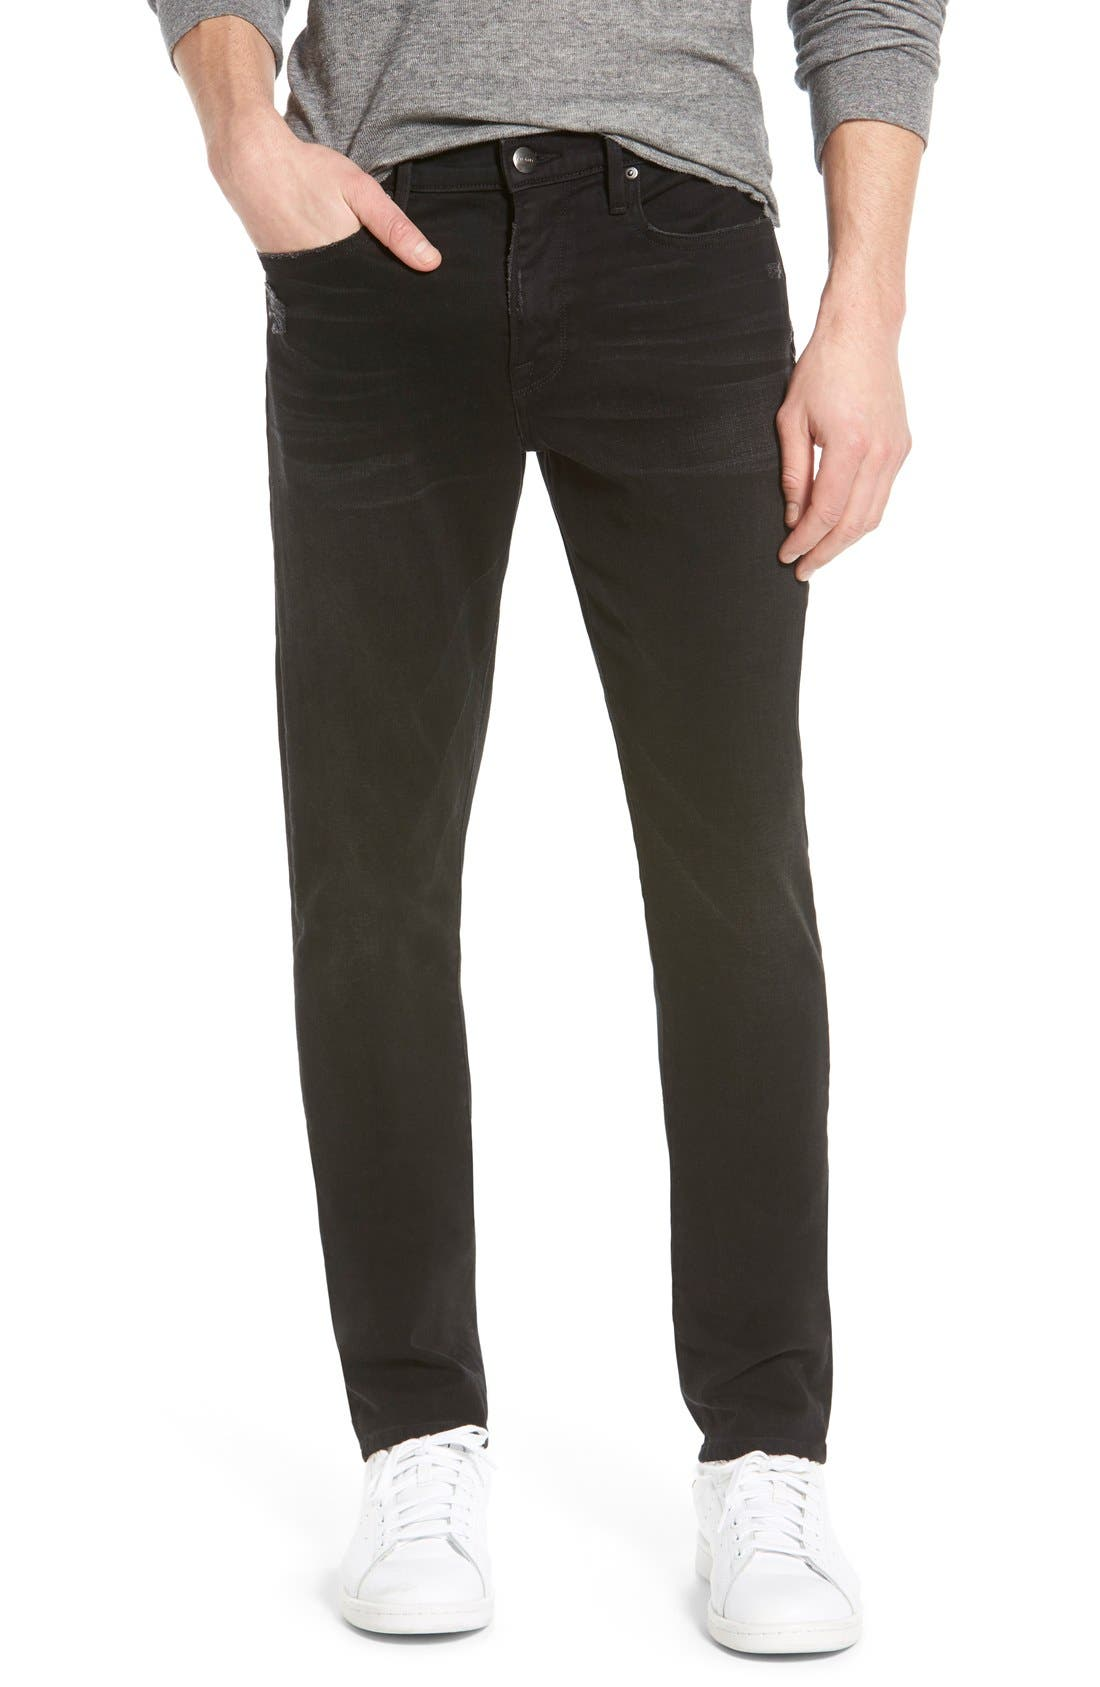 'L'Homme' Slim Fit Jeans,                             Main thumbnail 1, color,                             Chimney Rock